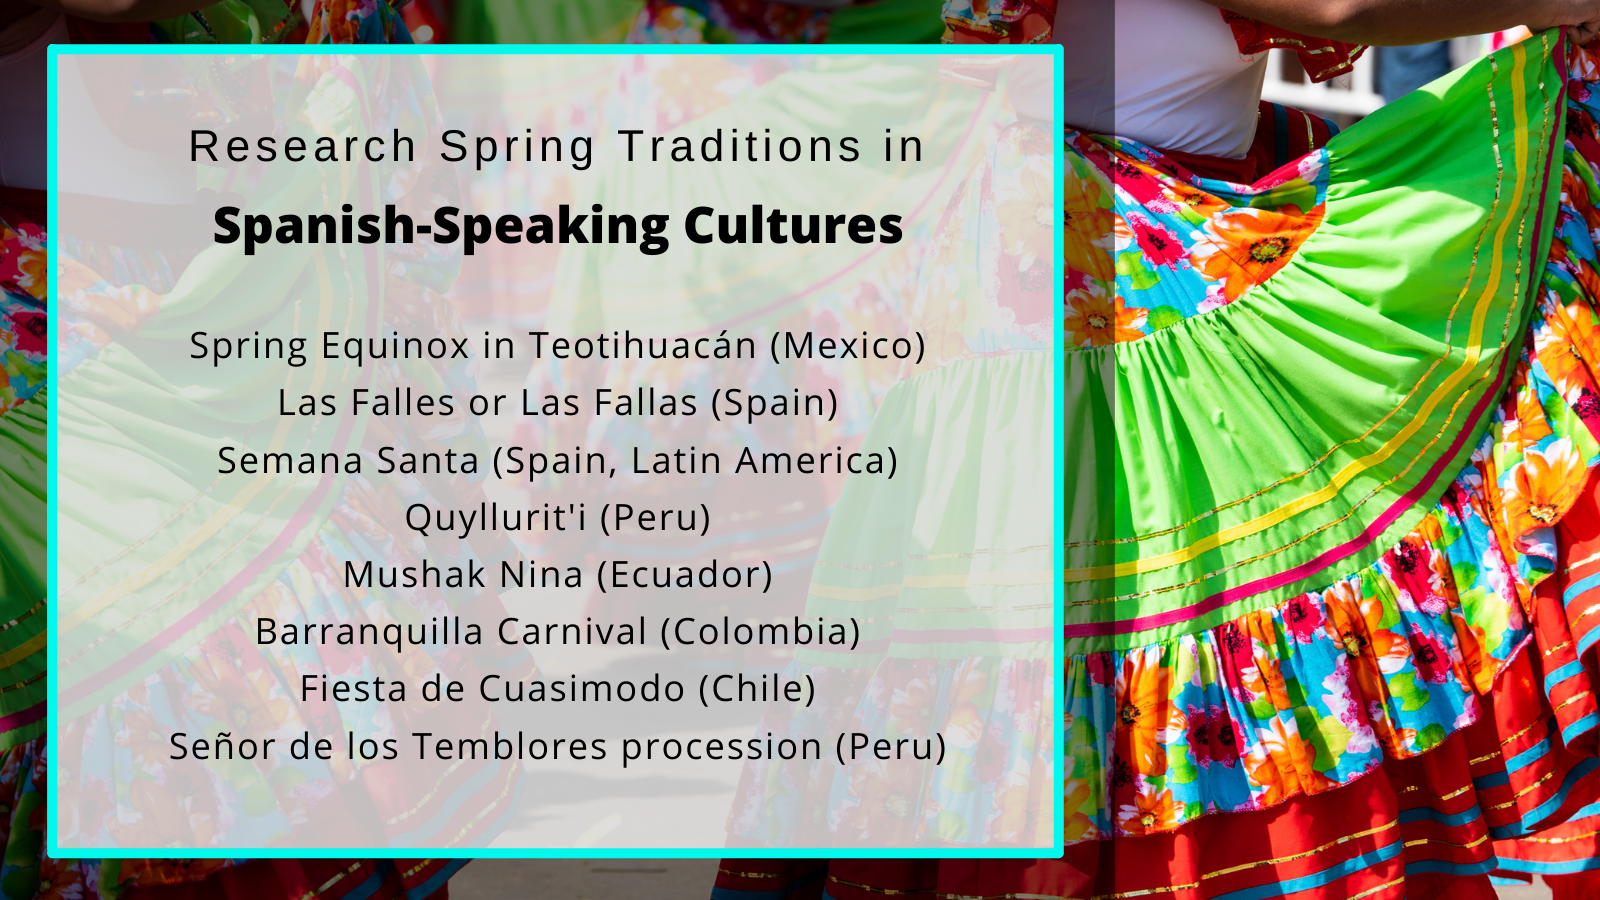 Research spring traditions in Spanish-speaking cultures for your world languages classroom